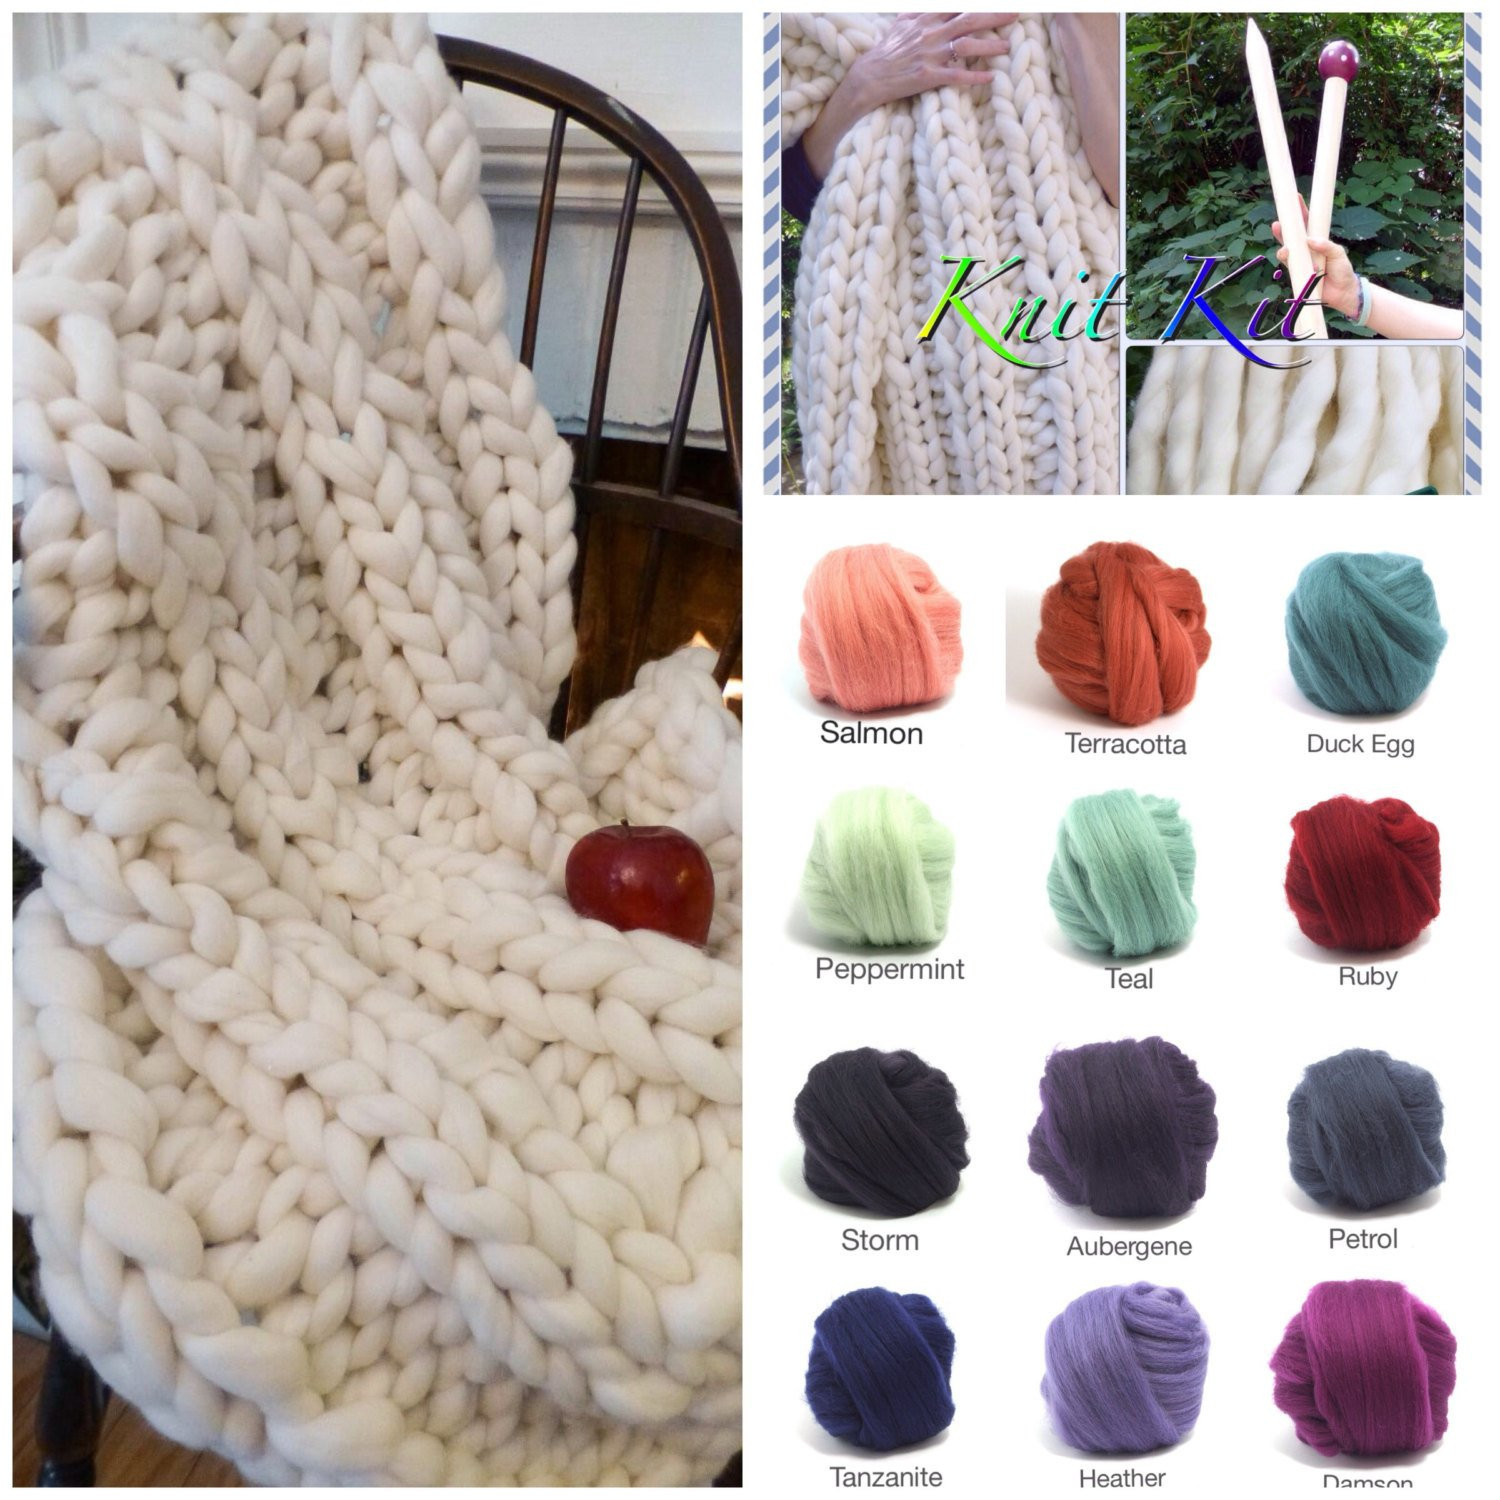 Chunky Knit Blanket Yarn Lovely Knit Kit Chunky Blanket 24 Needles4 Chunky Yarn Of New 40 Pictures Chunky Knit Blanket Yarn